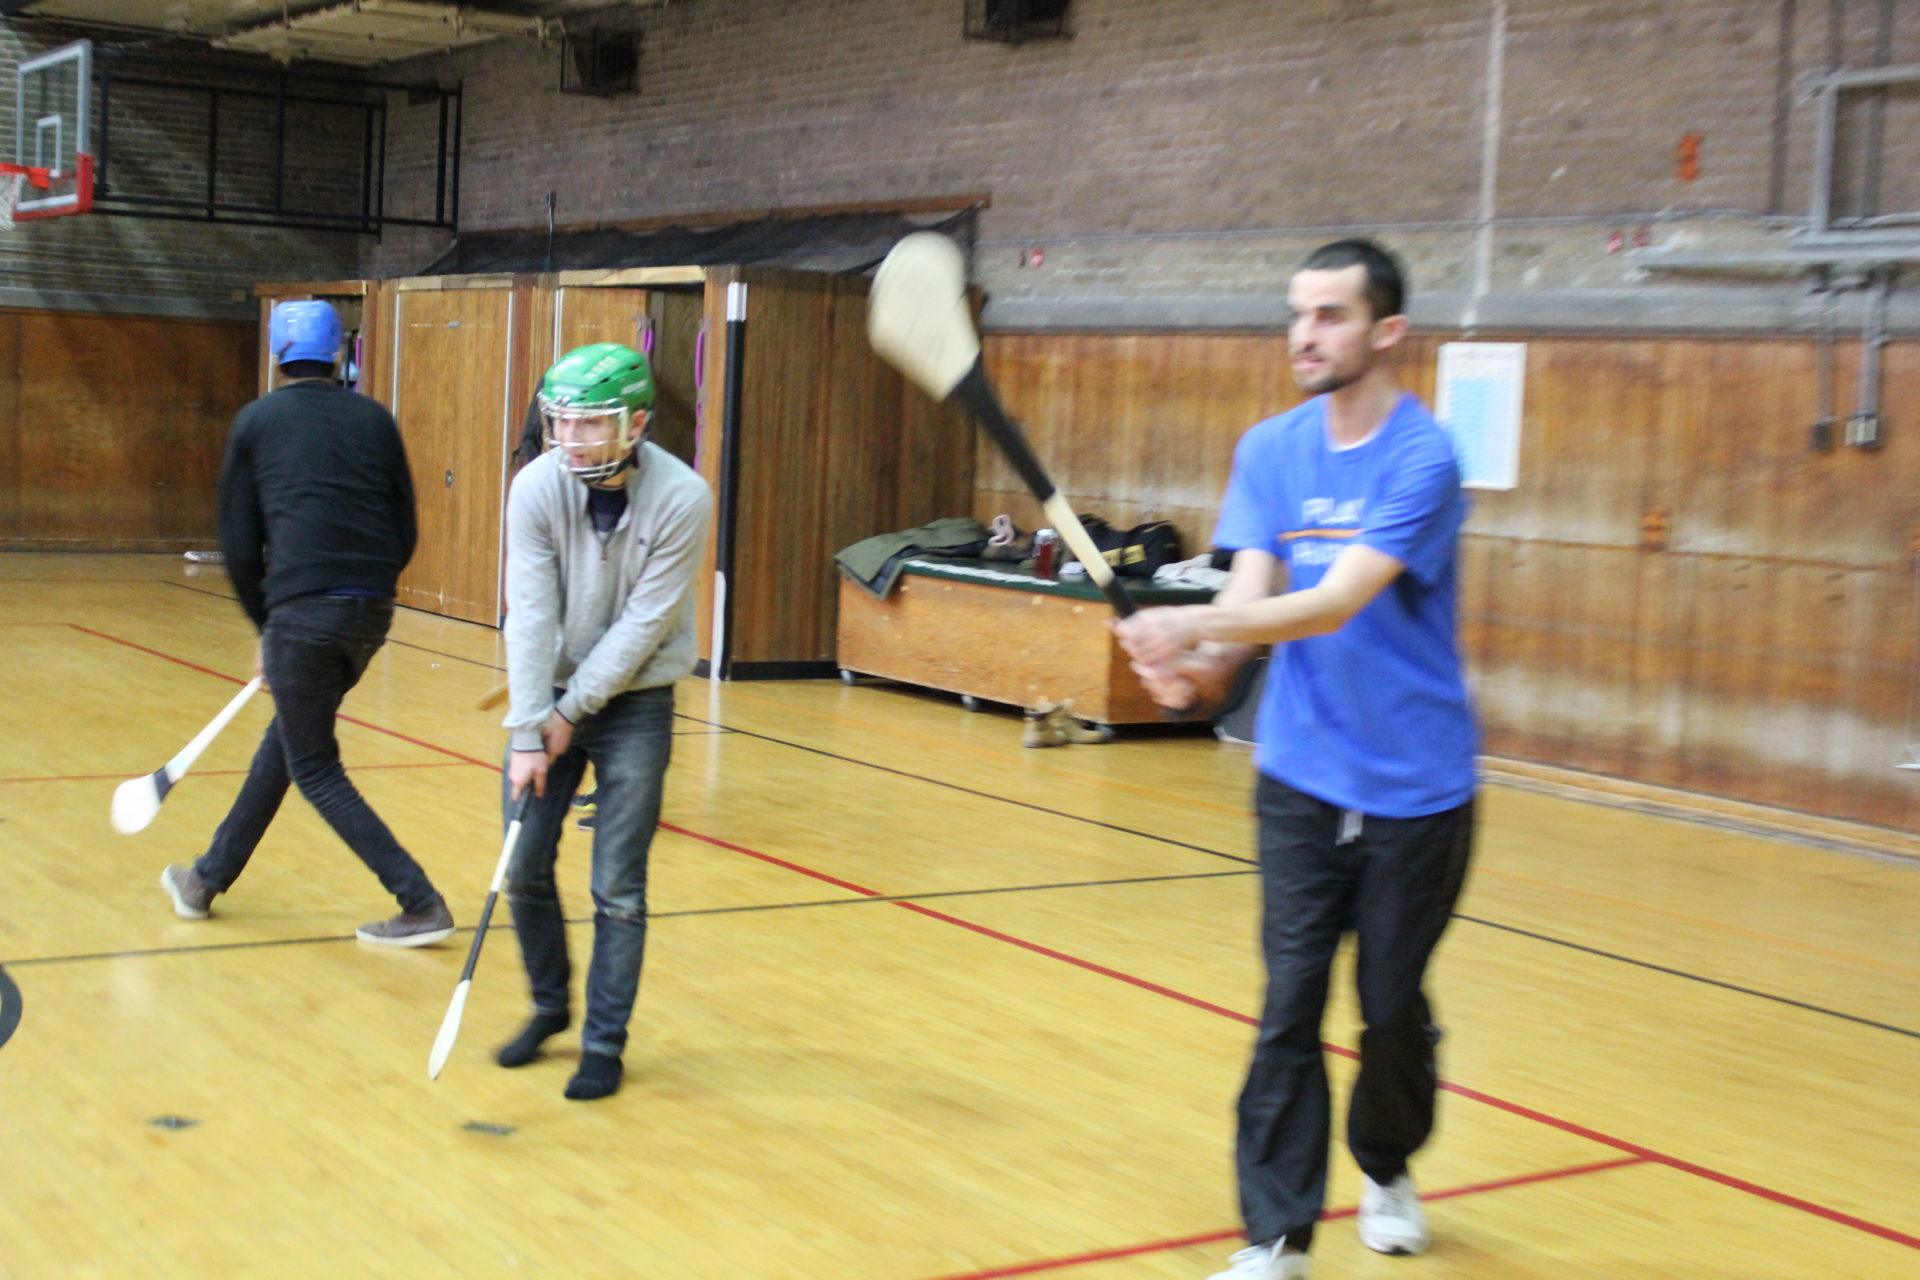 UofT Hurling Lessons striking on ground